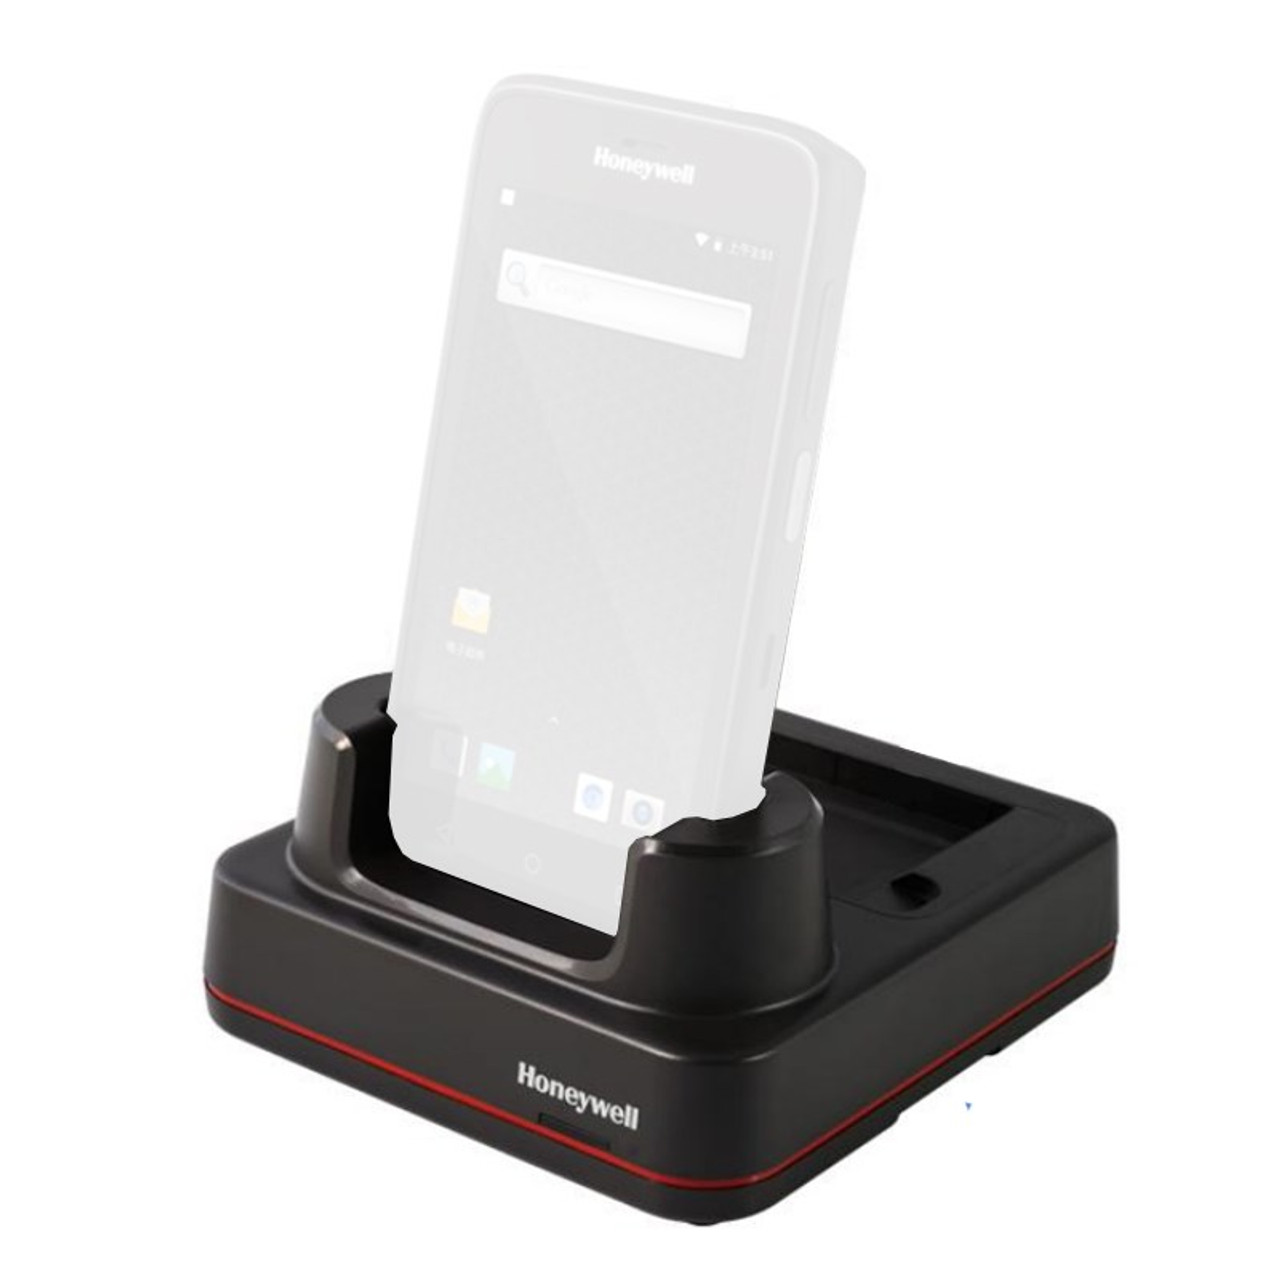 Image for Honeywell EDA51 Terminal Charging & Single Battery Charger CX Computer Superstore